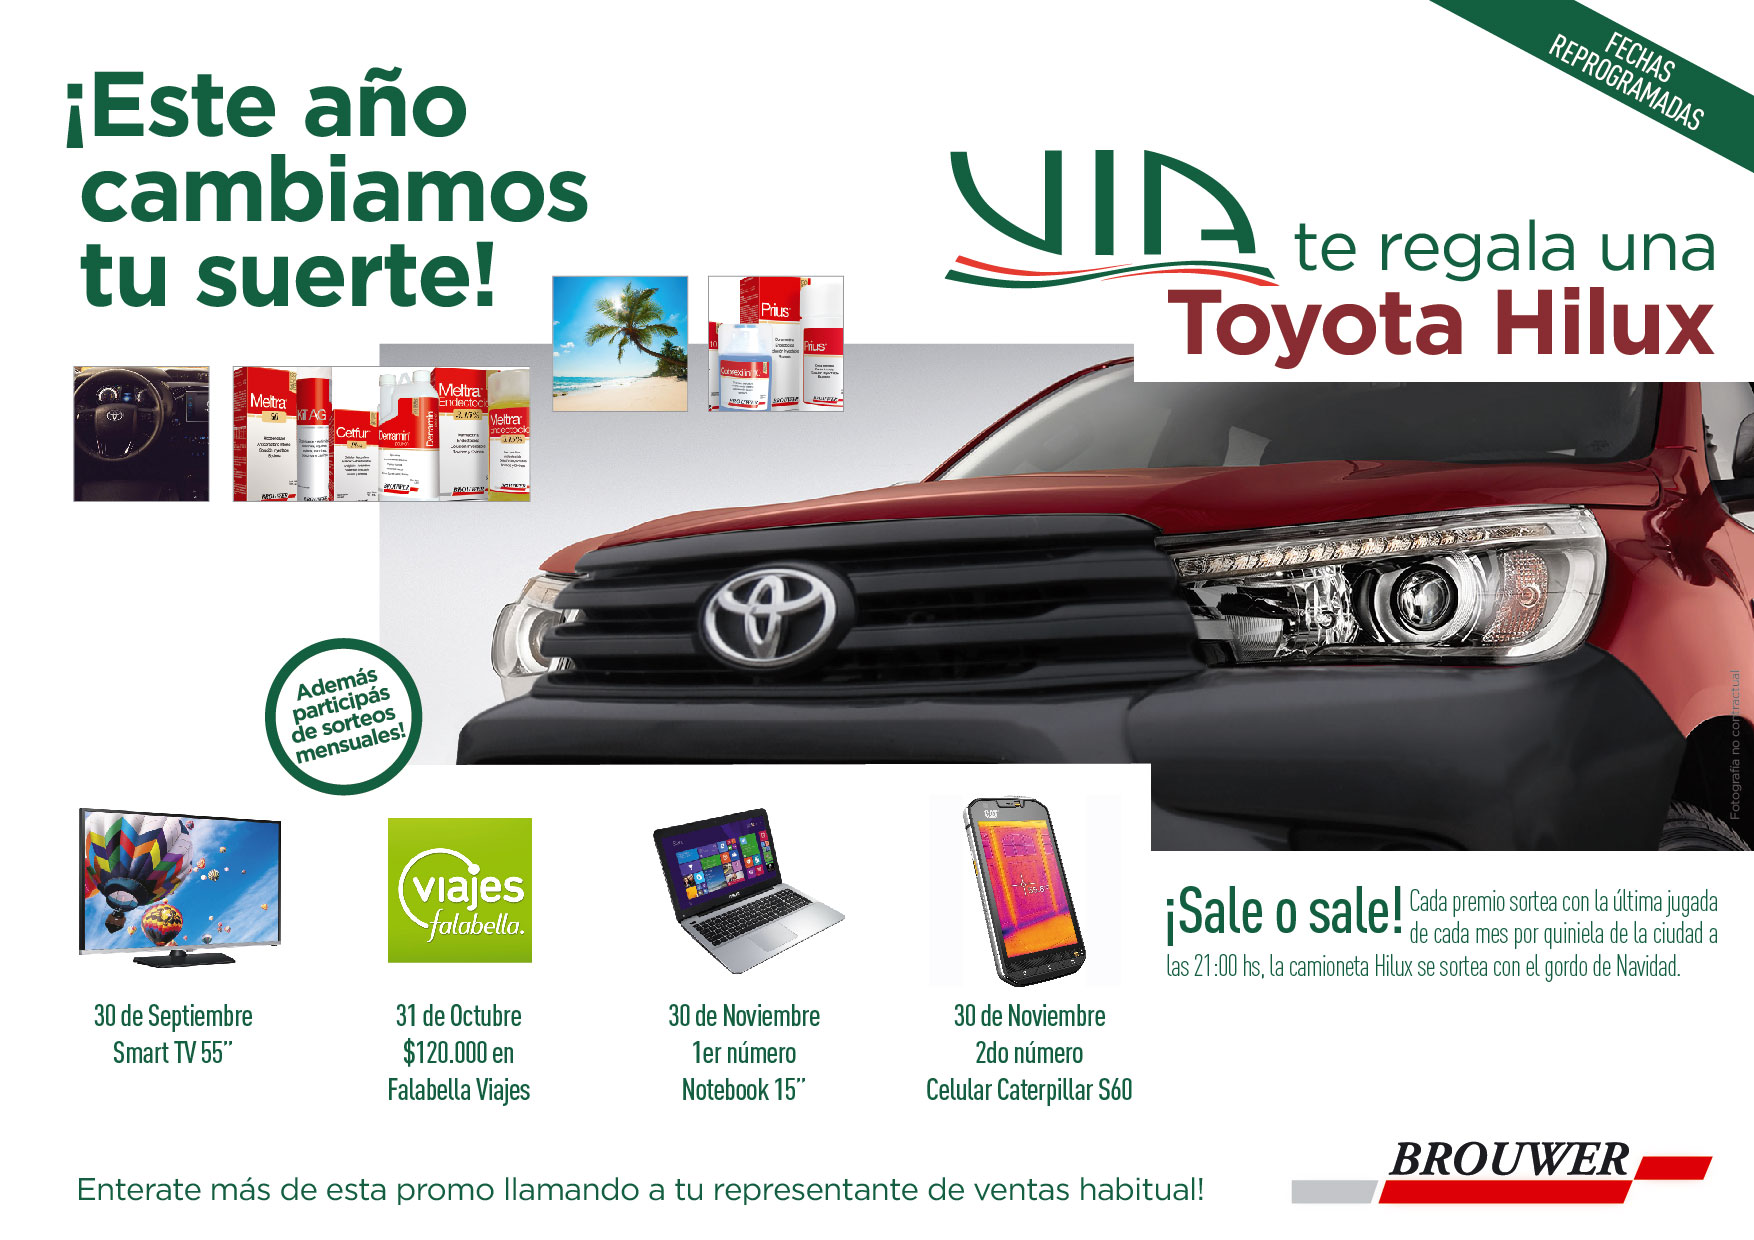 PROMO TOYOTA HILUX | BROUWER Y VIA